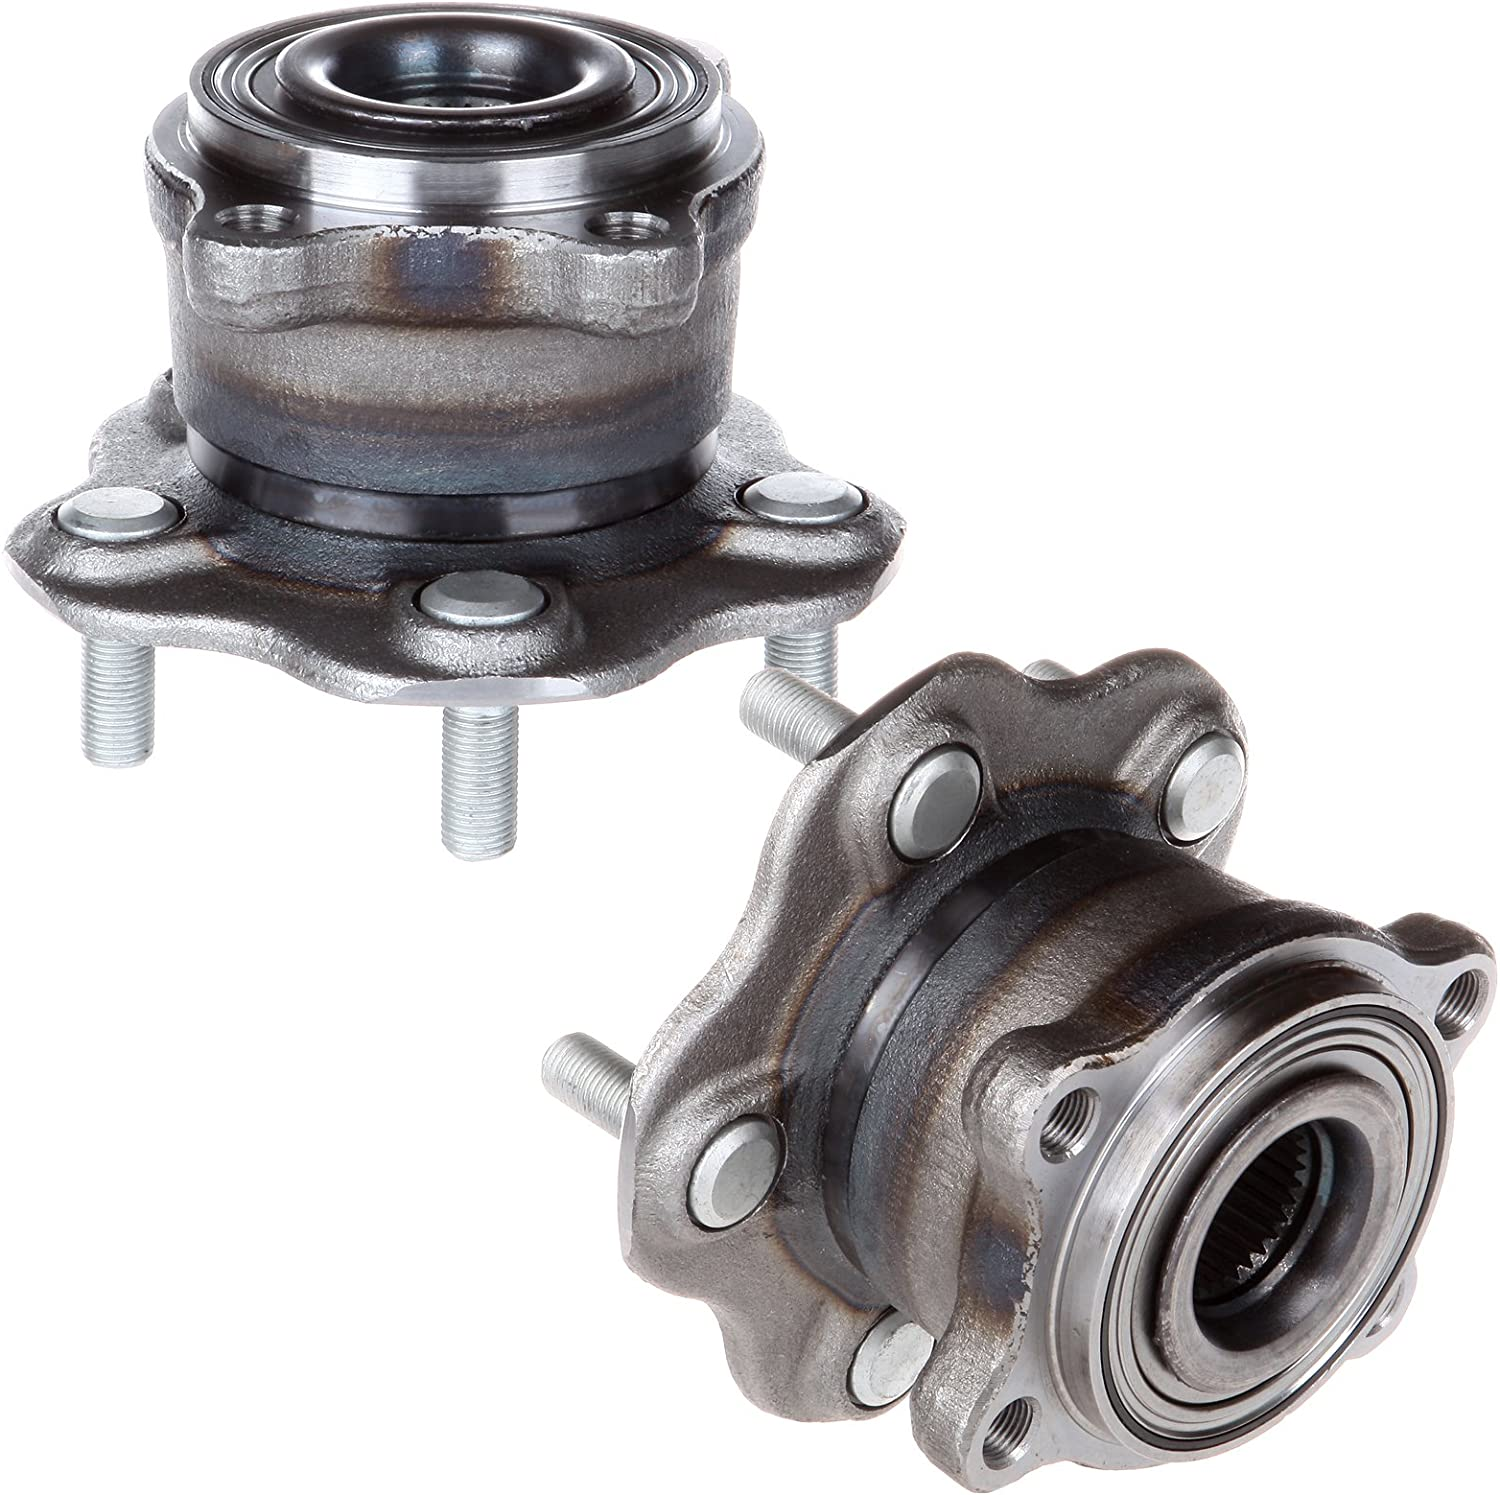 Pack of 1 OCPTY New Wheel Hub Bearings Rear Axle 5 Lugs with ABS Compatible for Infiniti EX35 G25 M35H Q70 370Z 2007-2017 OE 512151